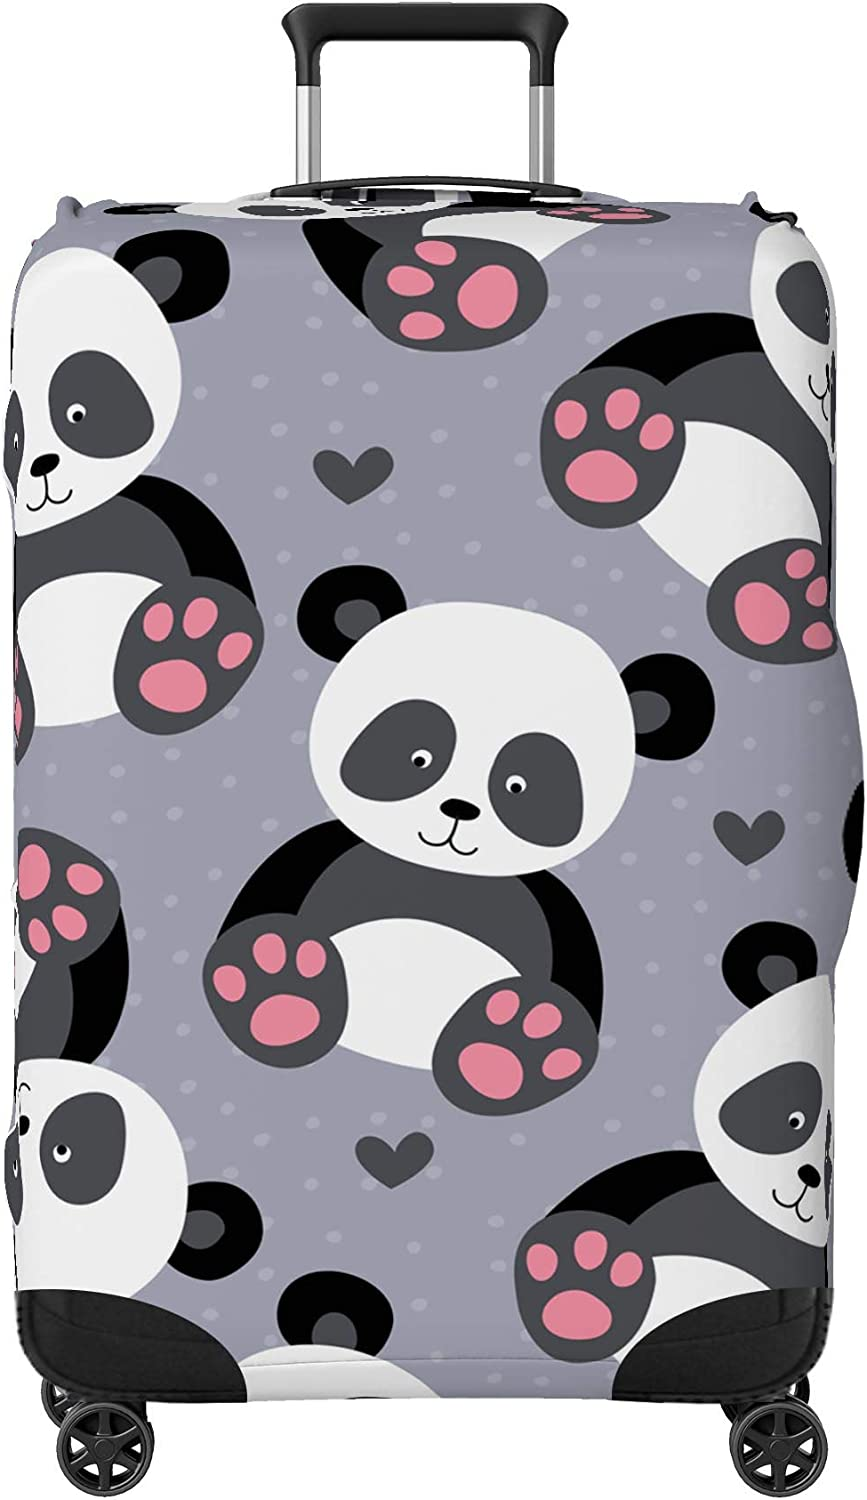 Suitcase NOT Included Cute Baby Pandas Kids Suitcase Cover Skin Protector Grey Small 18-22